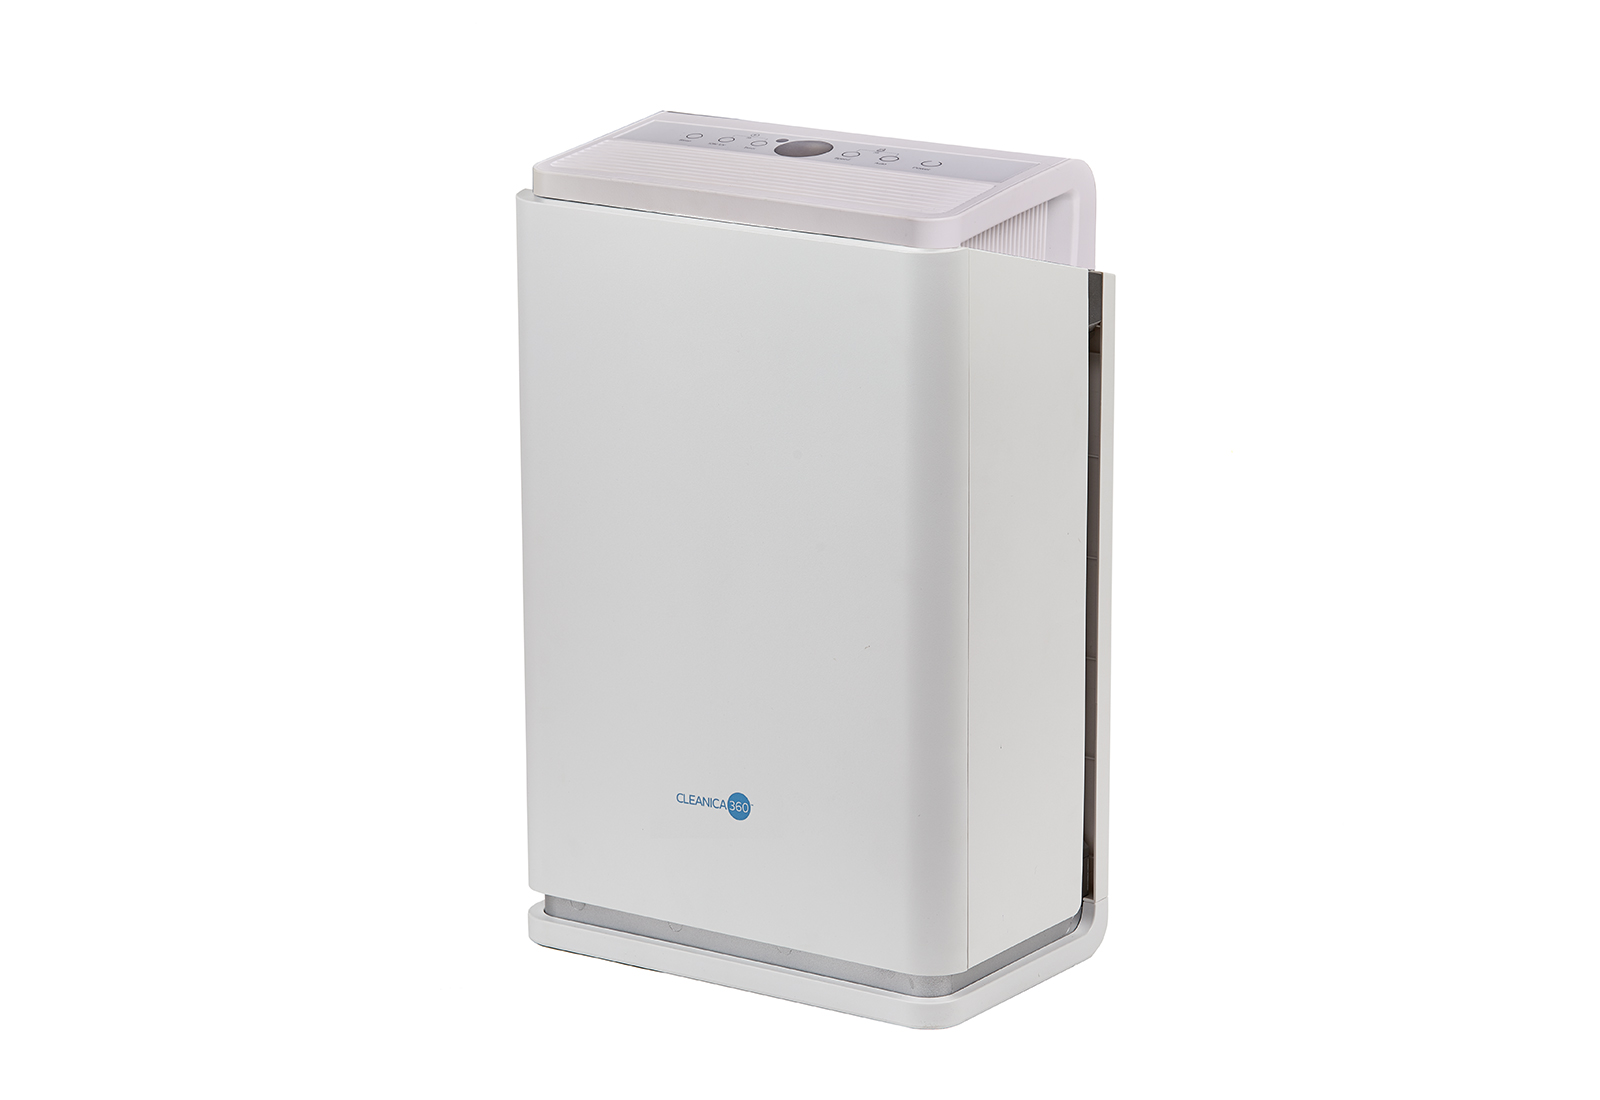 Cleanica 360 Air Purifier Product Image